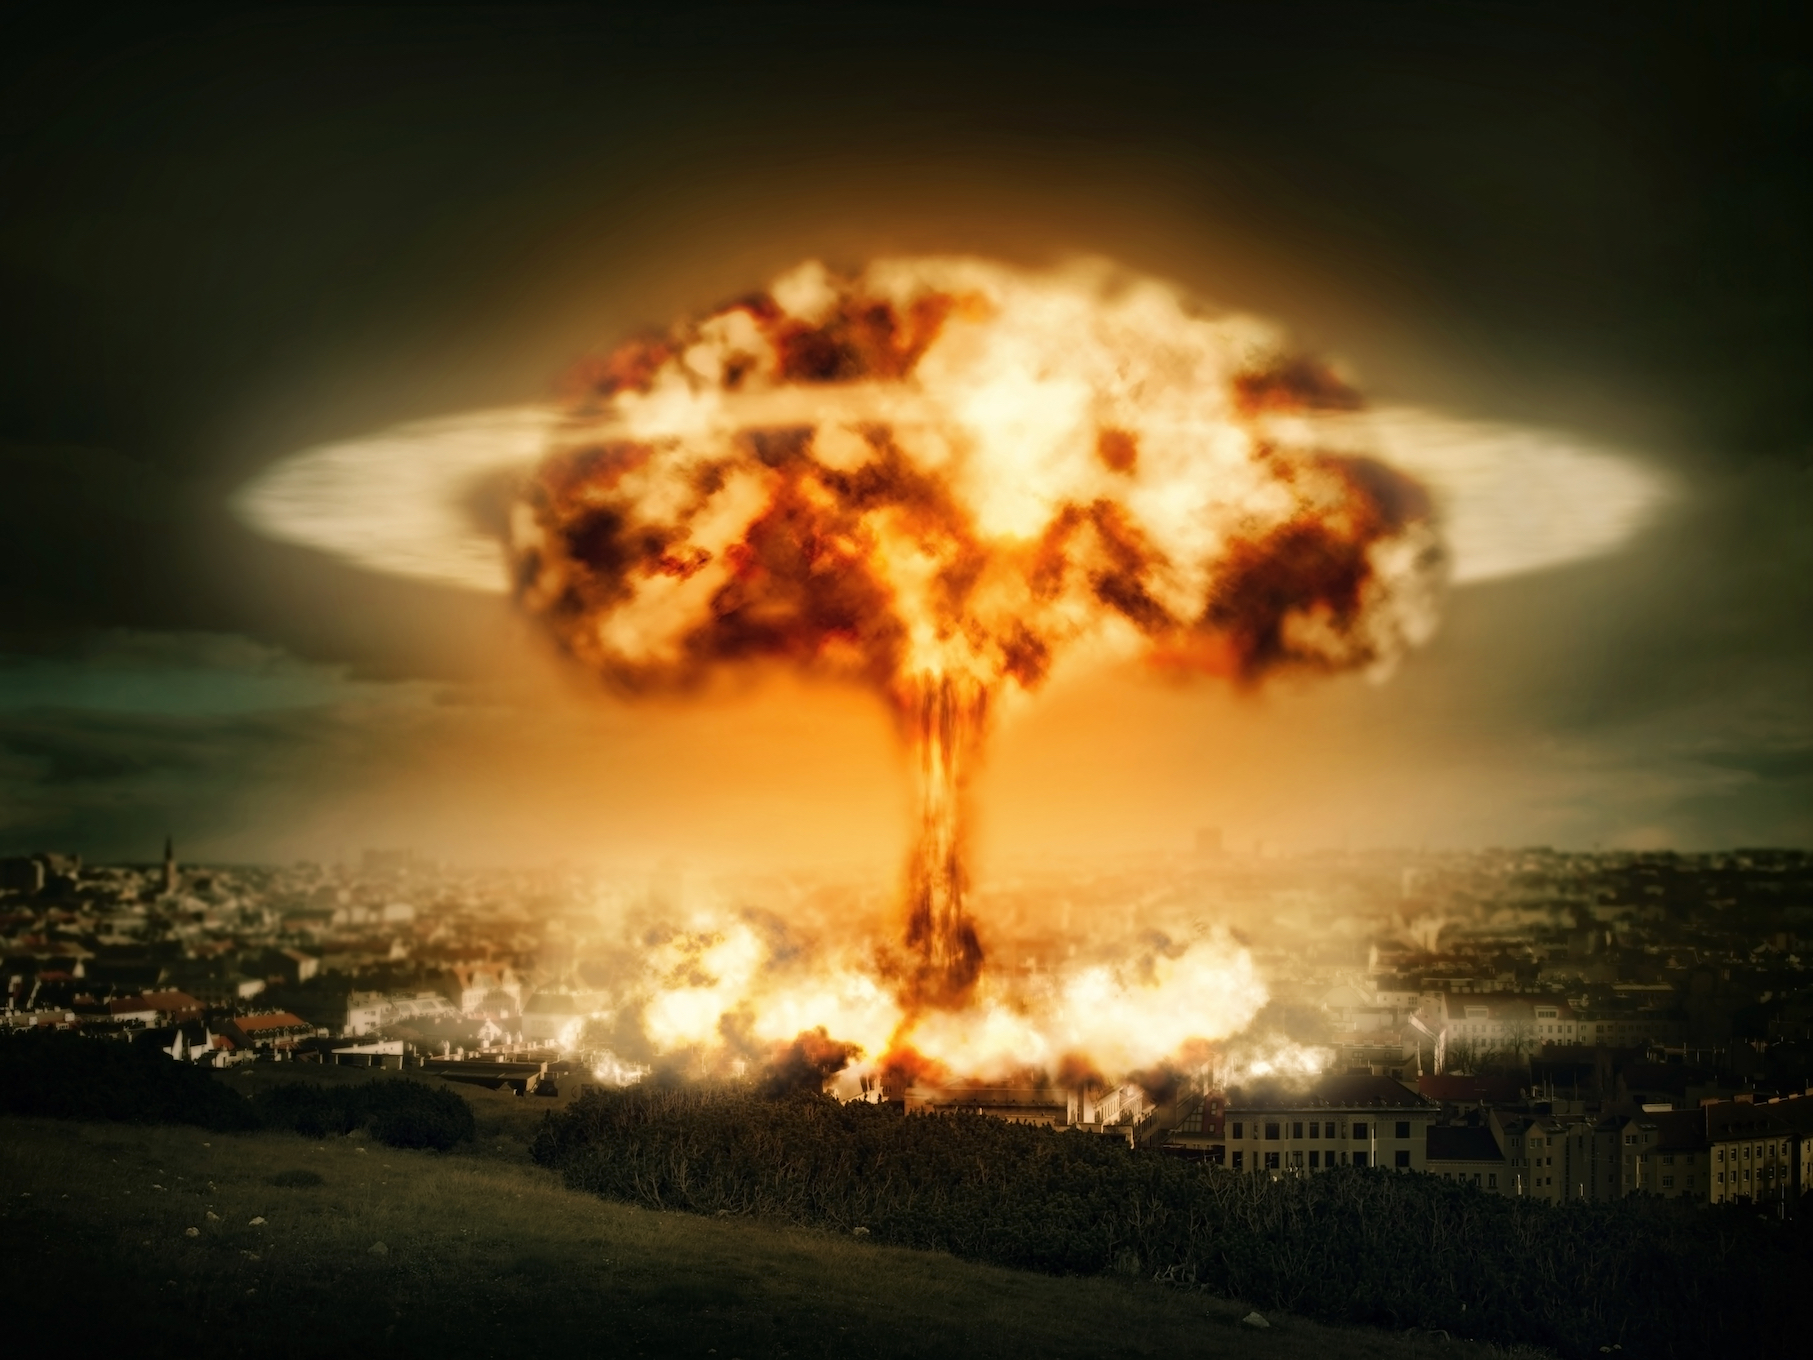 The impact of a single nuclear warhead would cause extreme climate change with drought and famine severe enough to kill millions of people.